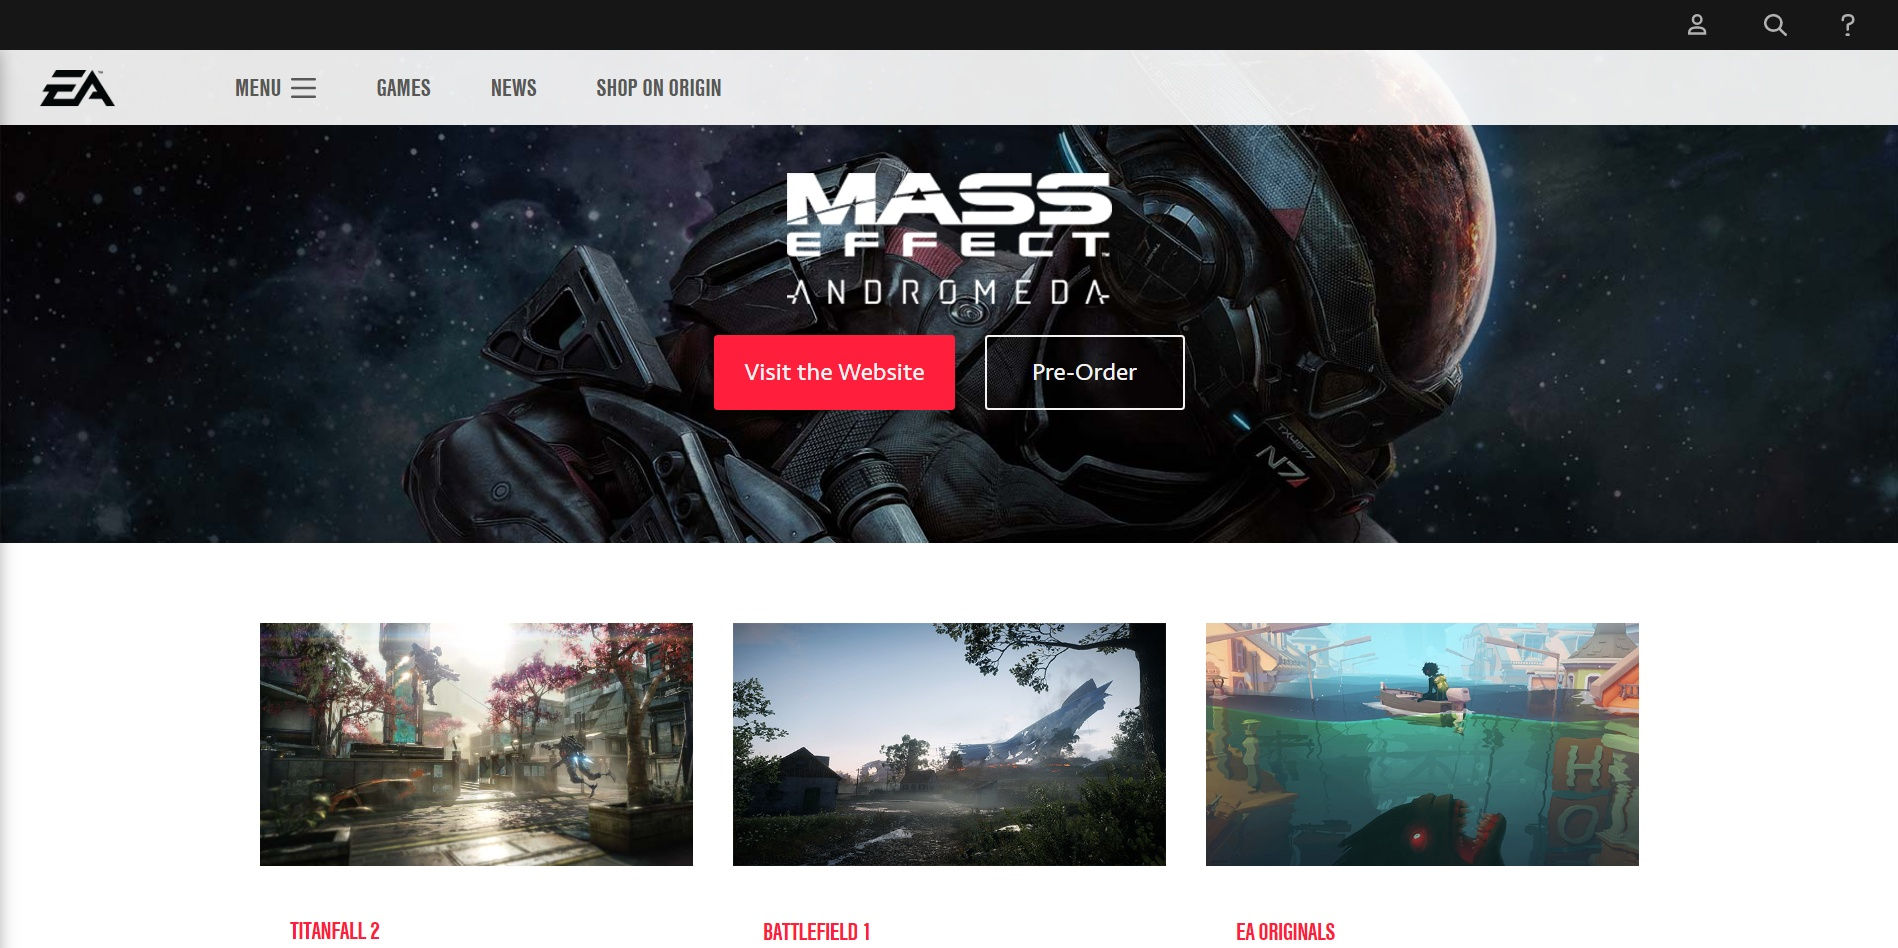 Electronic Arts simple home page increases sales